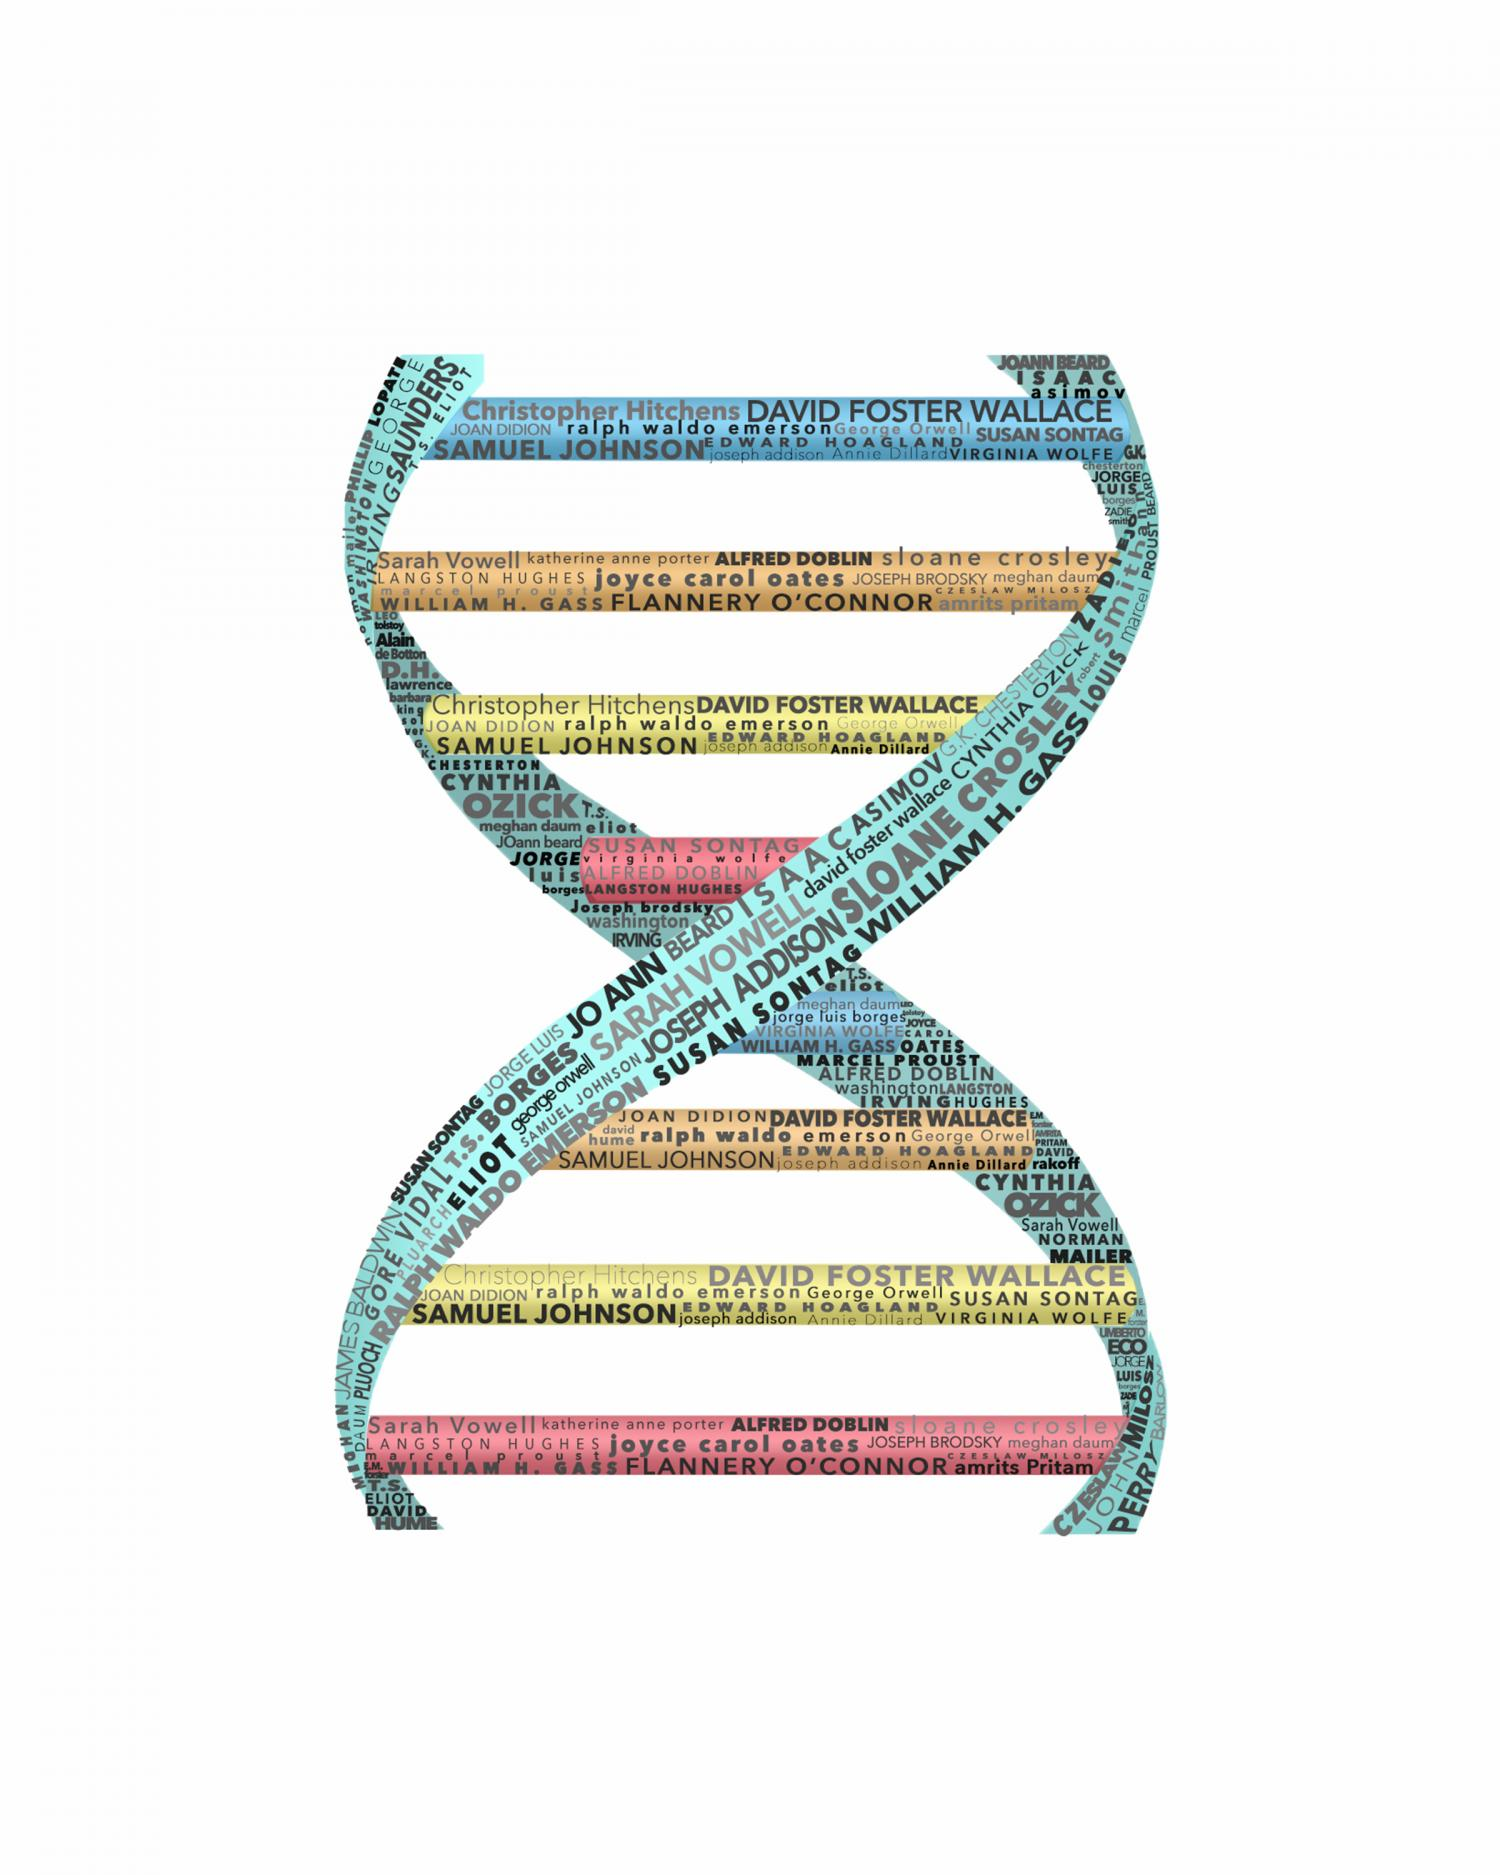 essay on human genome project The human genome project (hgp) started in 1990 as the culmination of the history of genetics research, which had been ongoing for decades before.